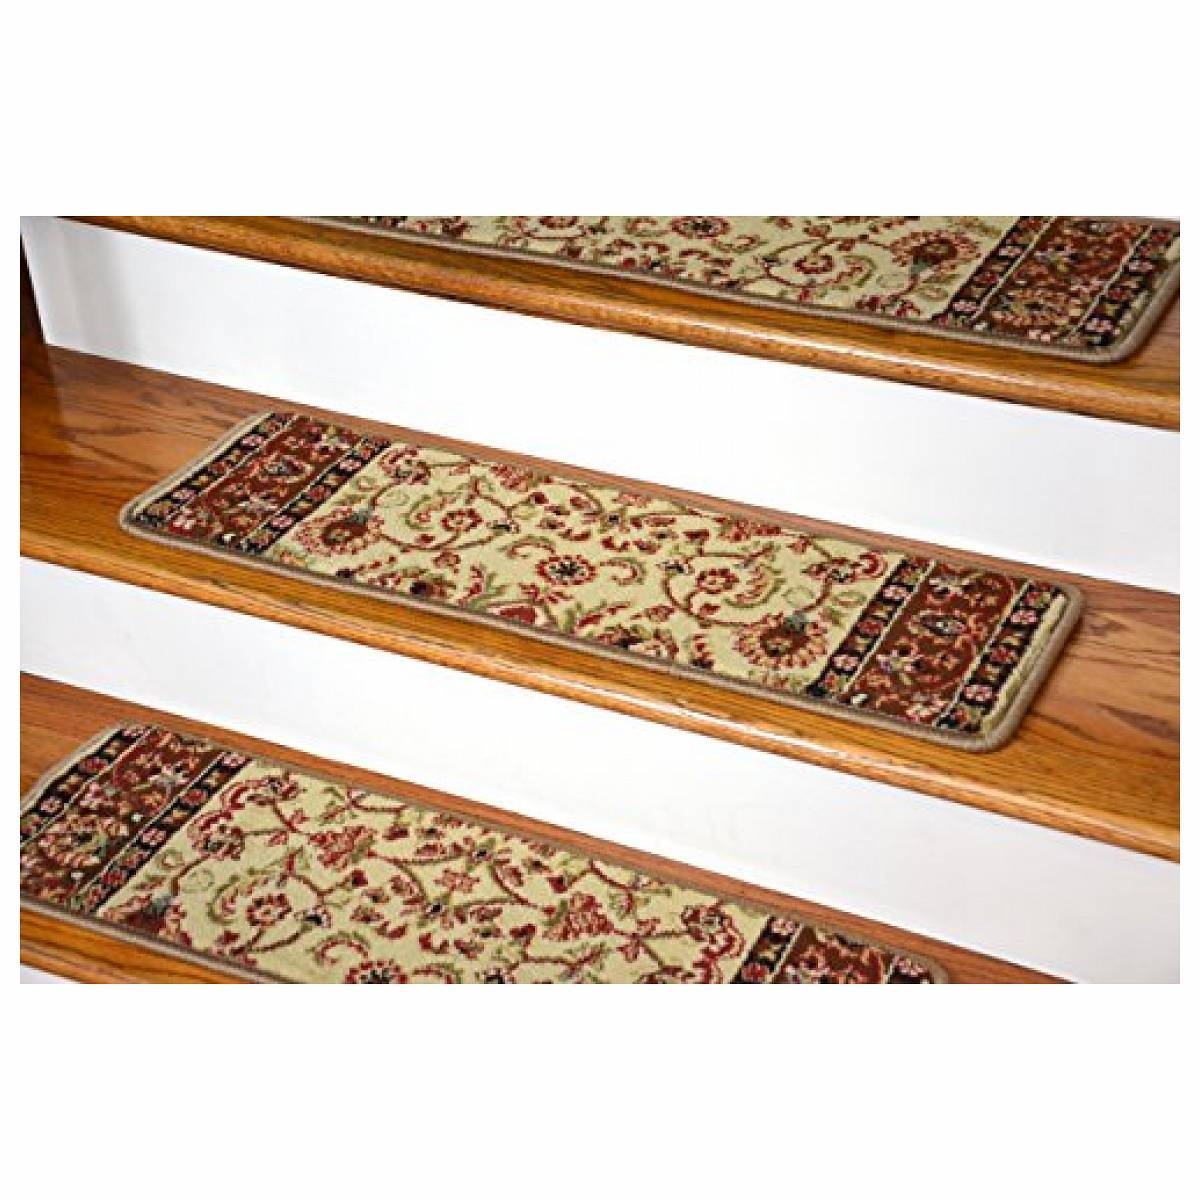 Entry Mudroom Wondrous Carpet Stair Treads With Classic Colors Pertaining To Stair Treads And Rugs (#6 of 20)